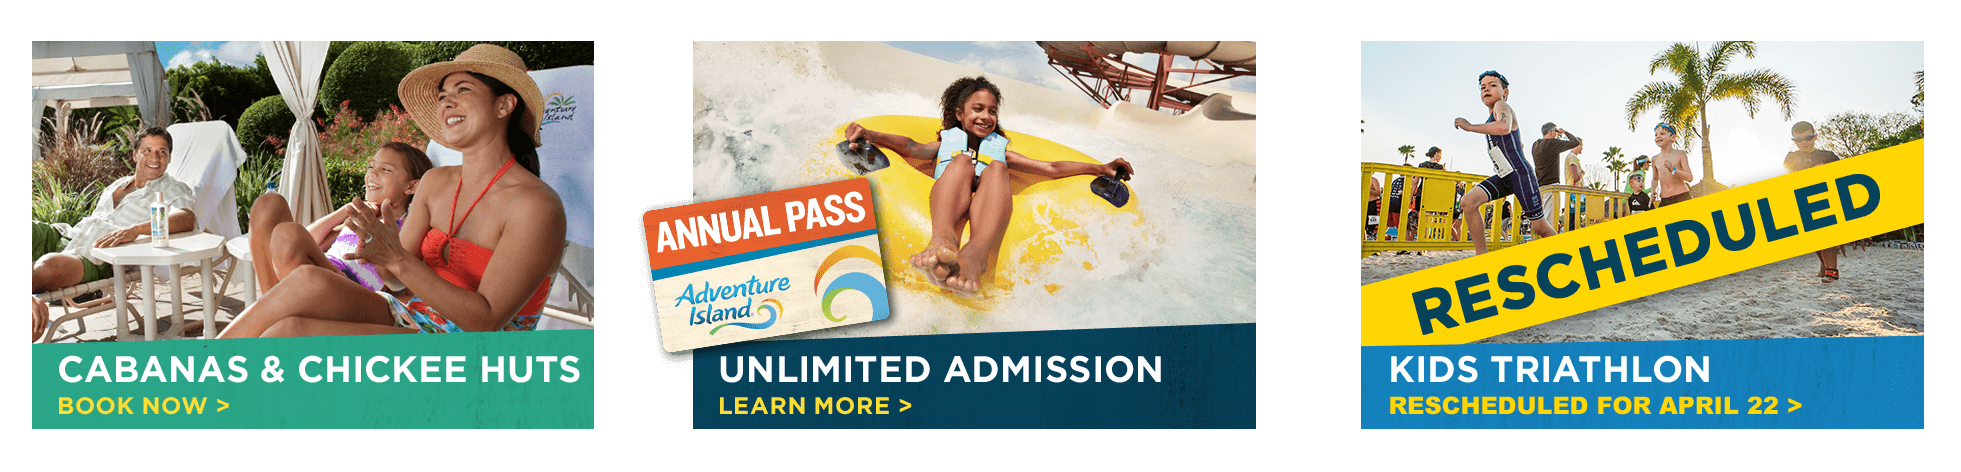 Adventure Island Tampa Bay | Cabanas & Chickee Huts | Annual Pass | Kids Triathlon